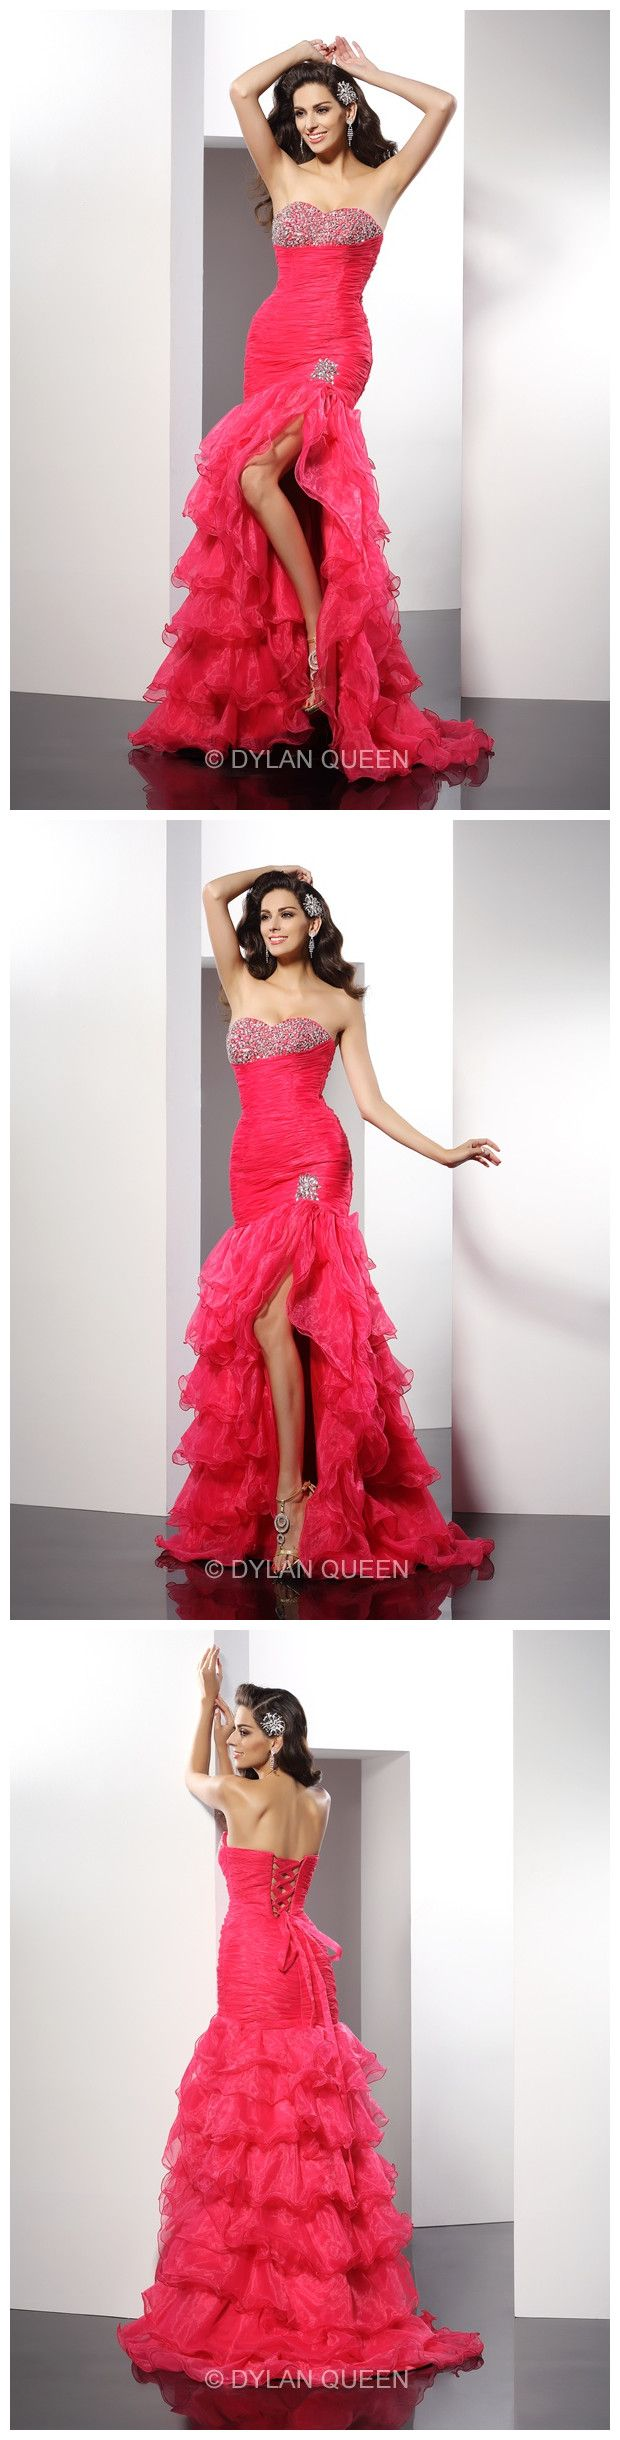 when I see the dress, I want dress it to dance~ dance~ share more #gorgeous #fashion #stylish #nice #prom dress on www.dylanqueen.com